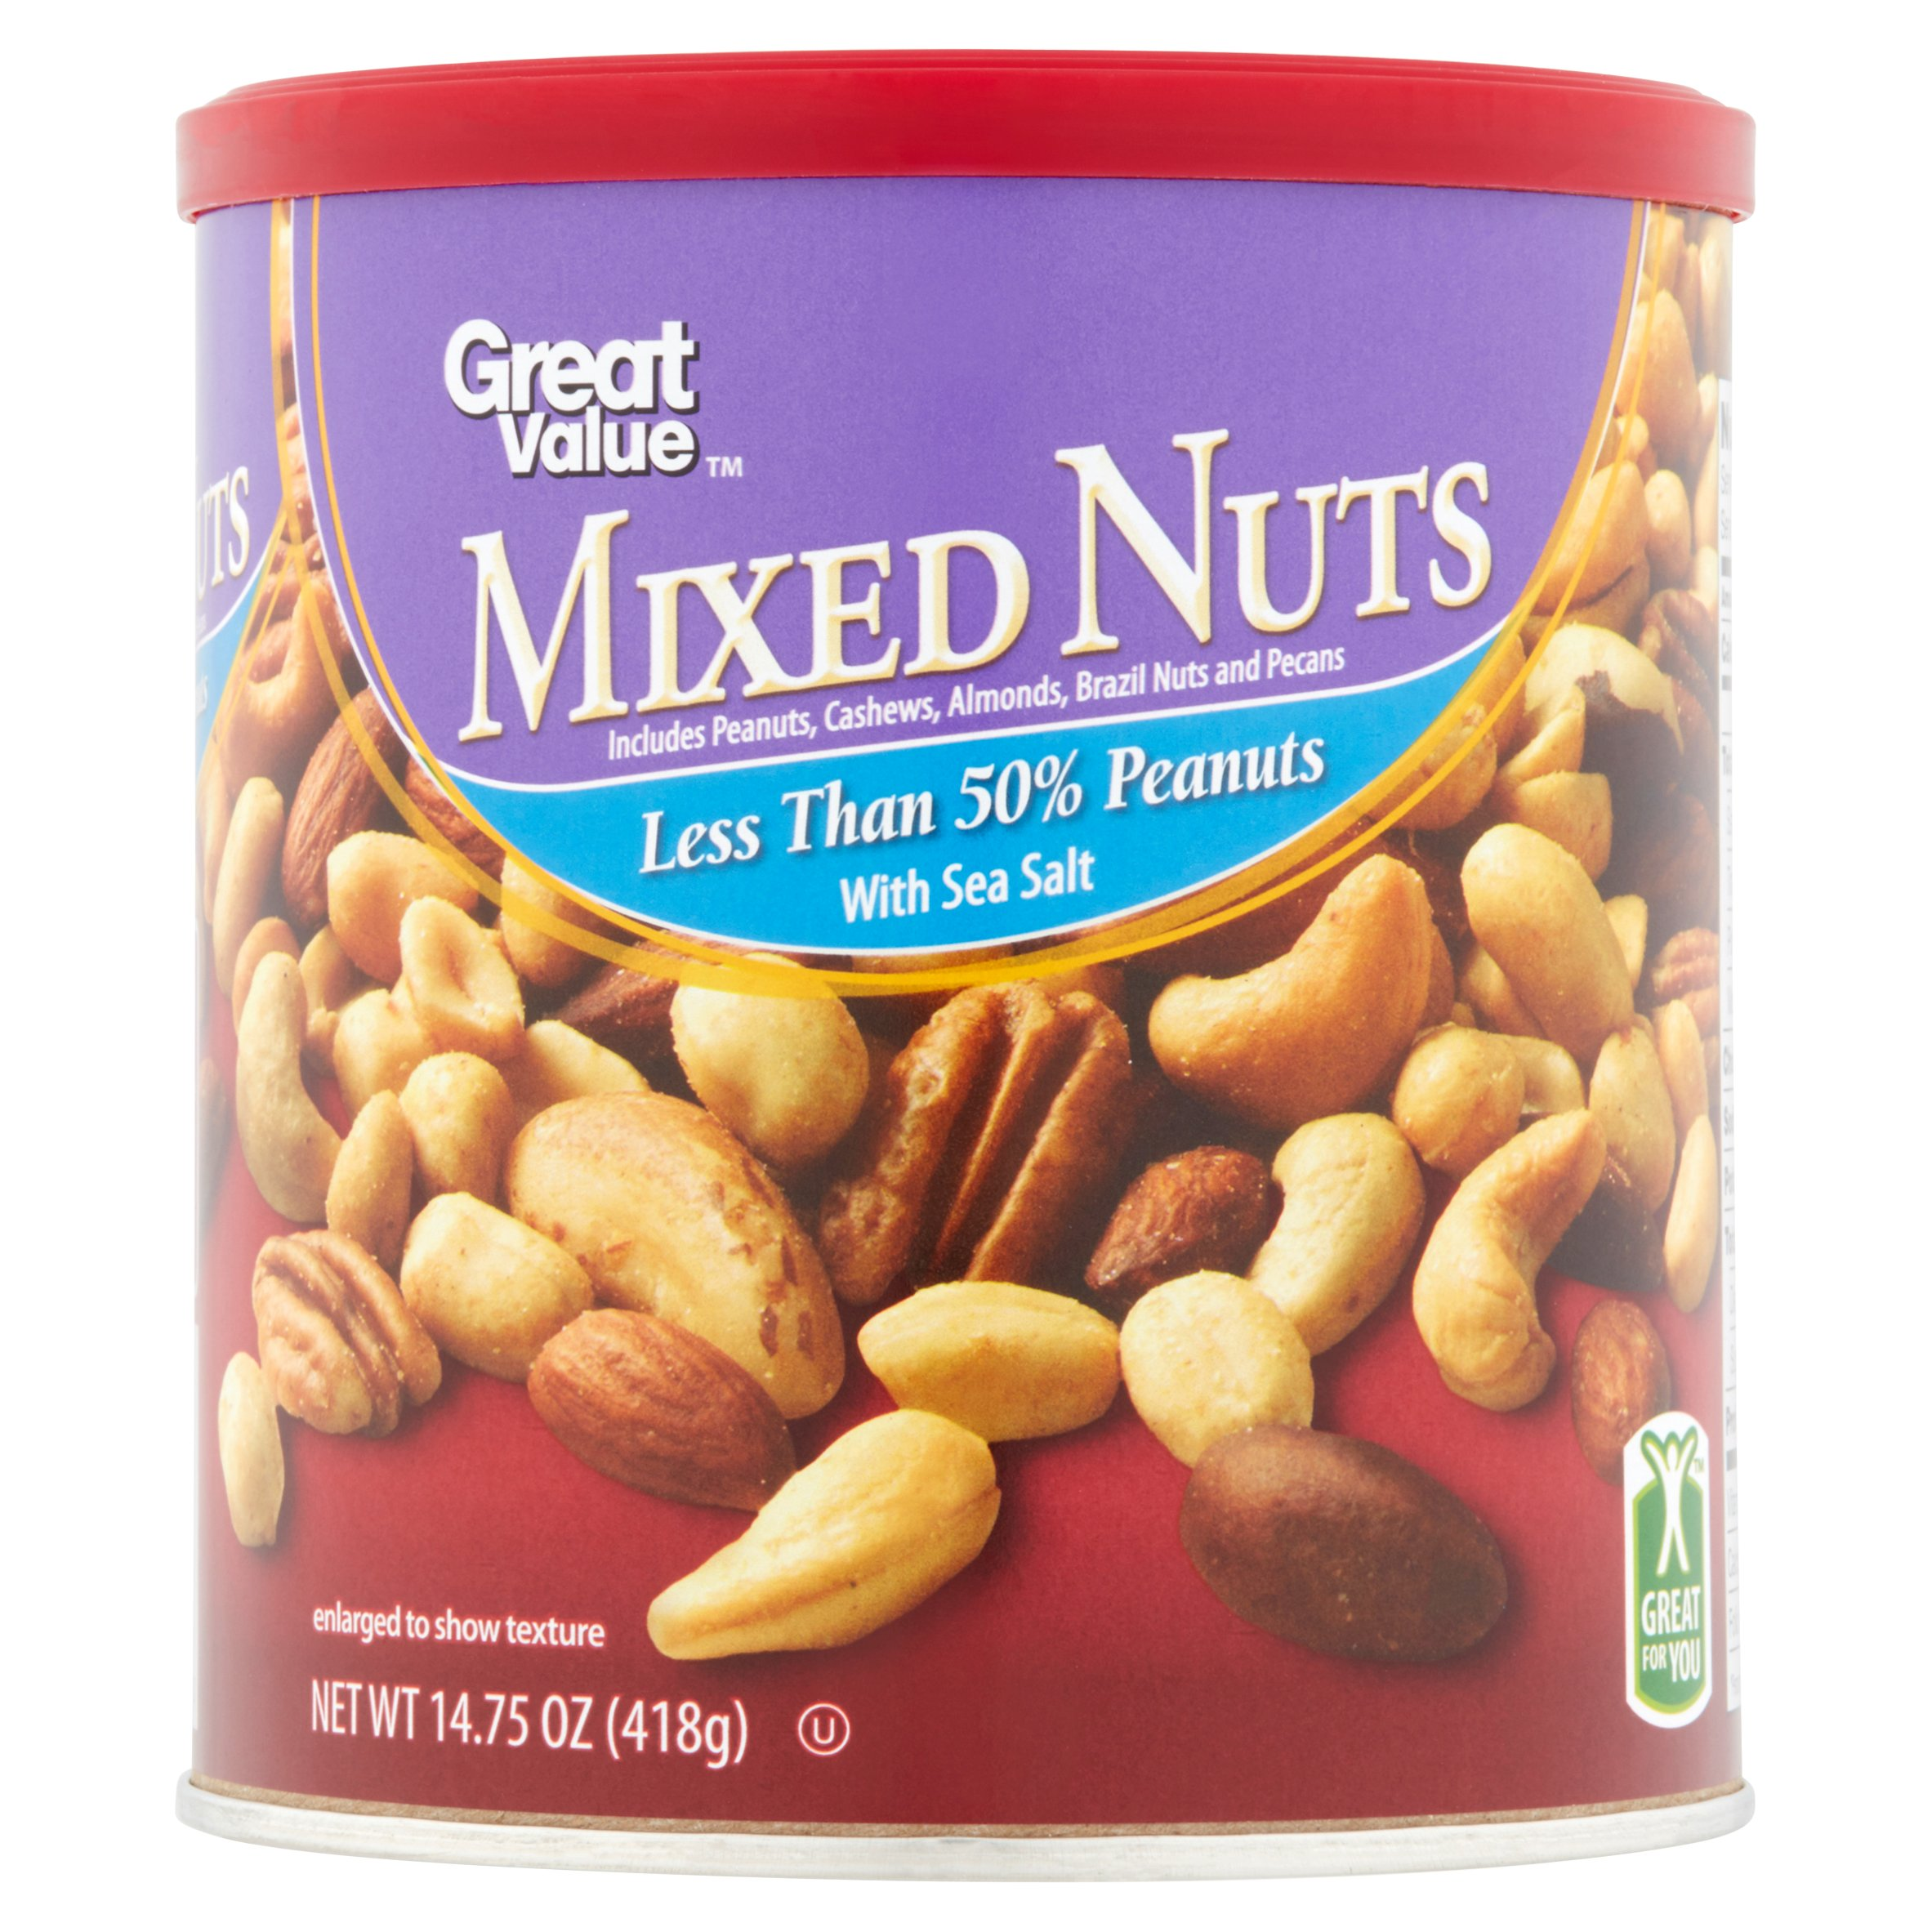 Great Value Mixed Nuts, 14.75 oz